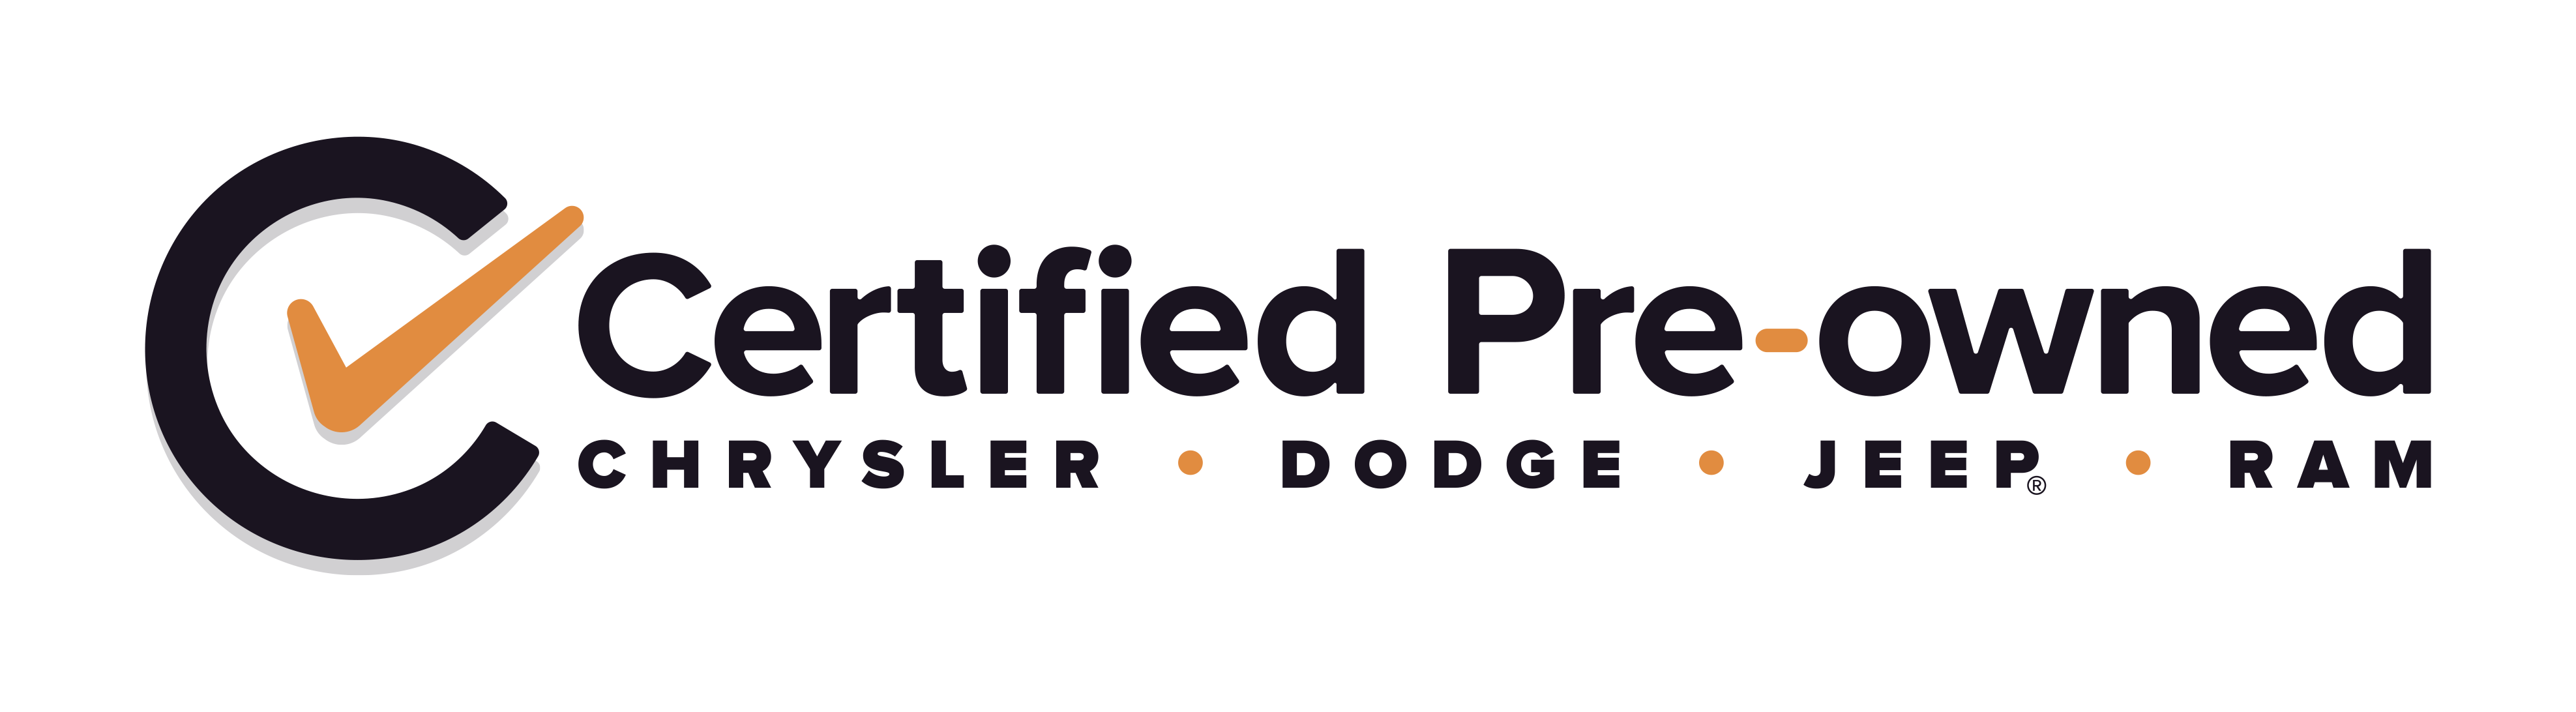 Jeep Certified Pre-Owned >> Certified Pre Owned Details